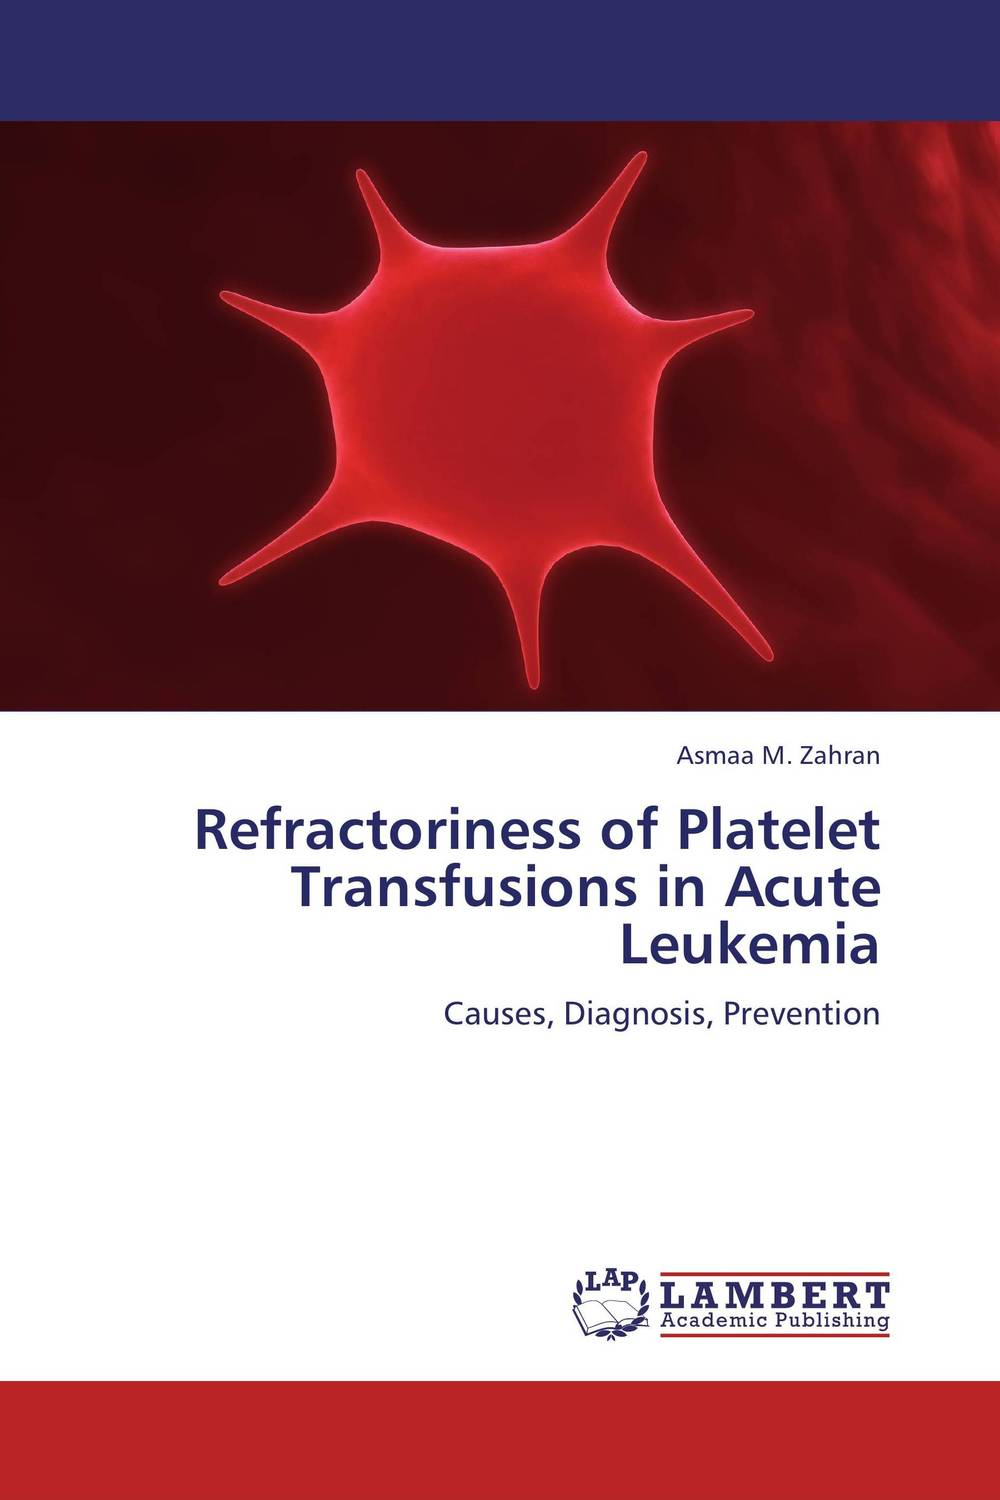 Refractoriness of Platelet Transfusions in Acute Leukemia viruses cell transformation and cancer 5